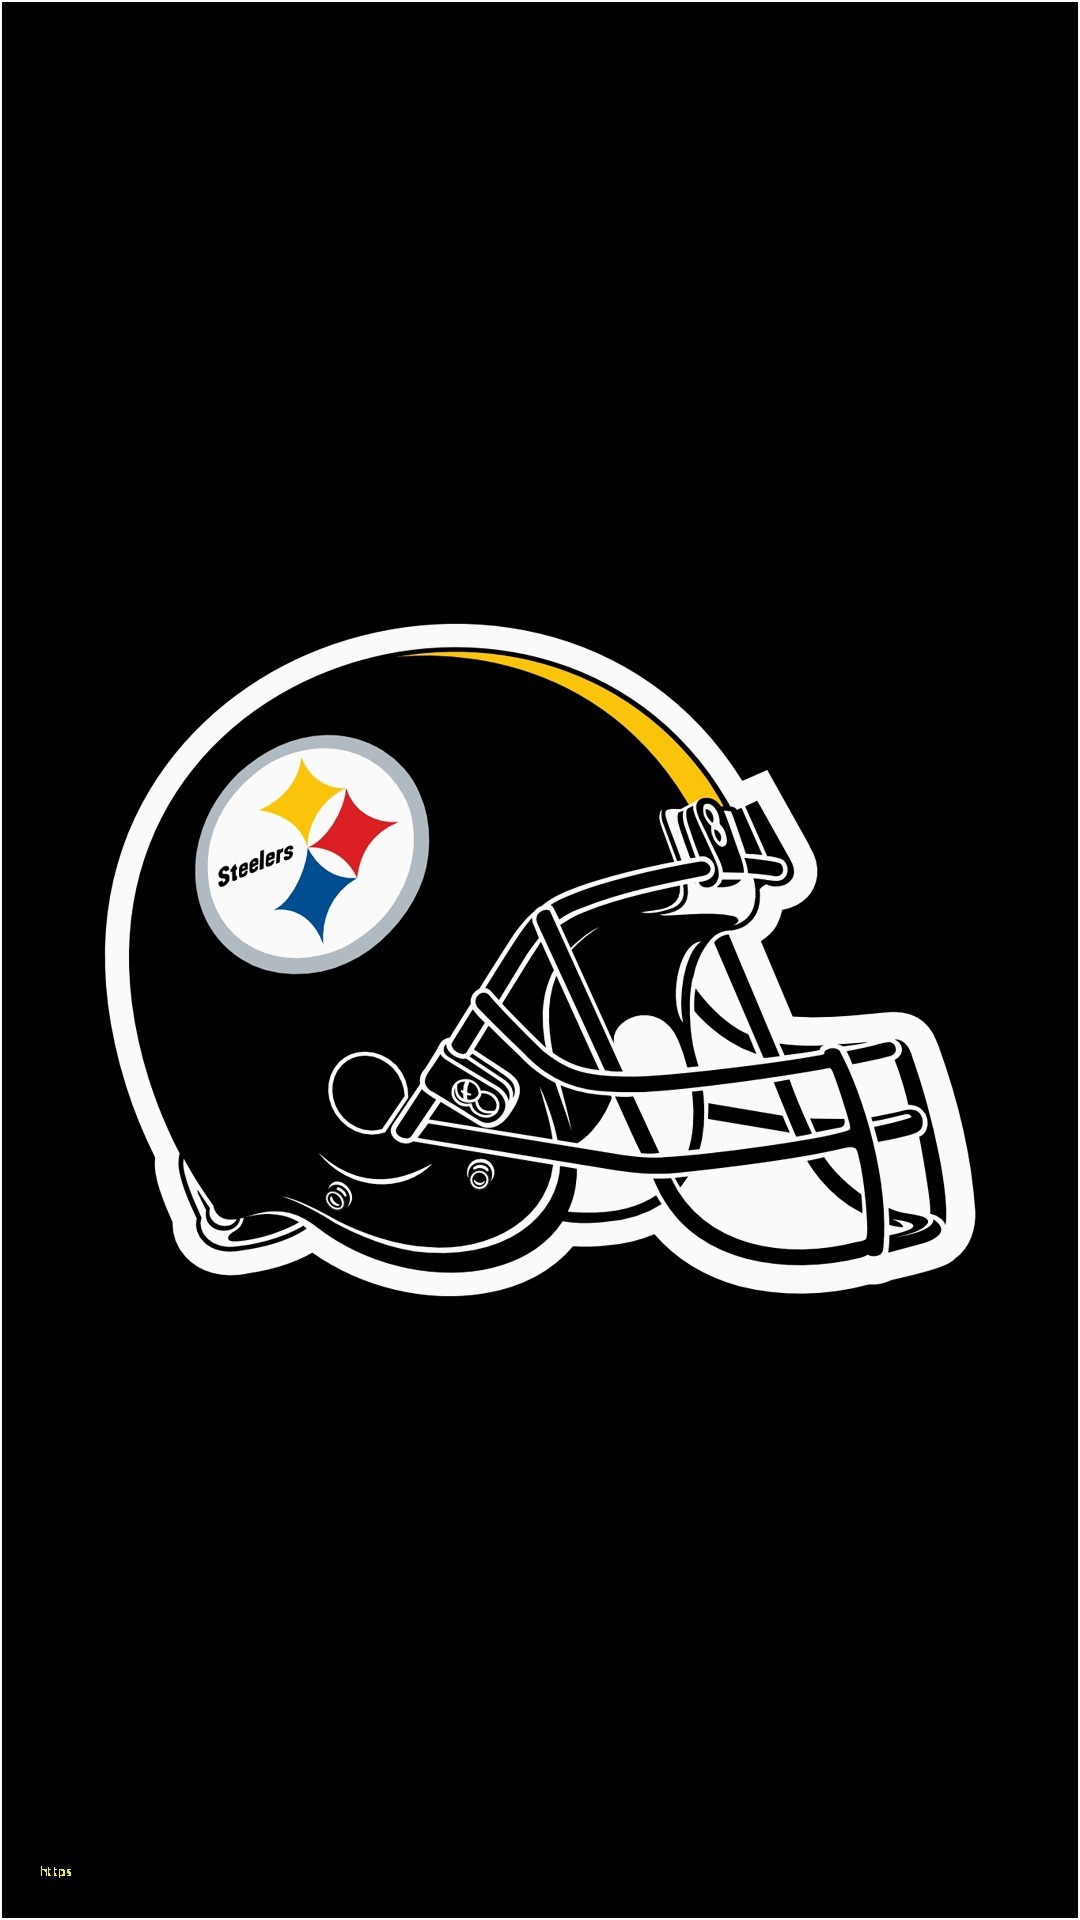 Res: 1080x1920, Steelers Wallpaper Awesome Steelers Wallpapers 2017 Wallpaper Cave